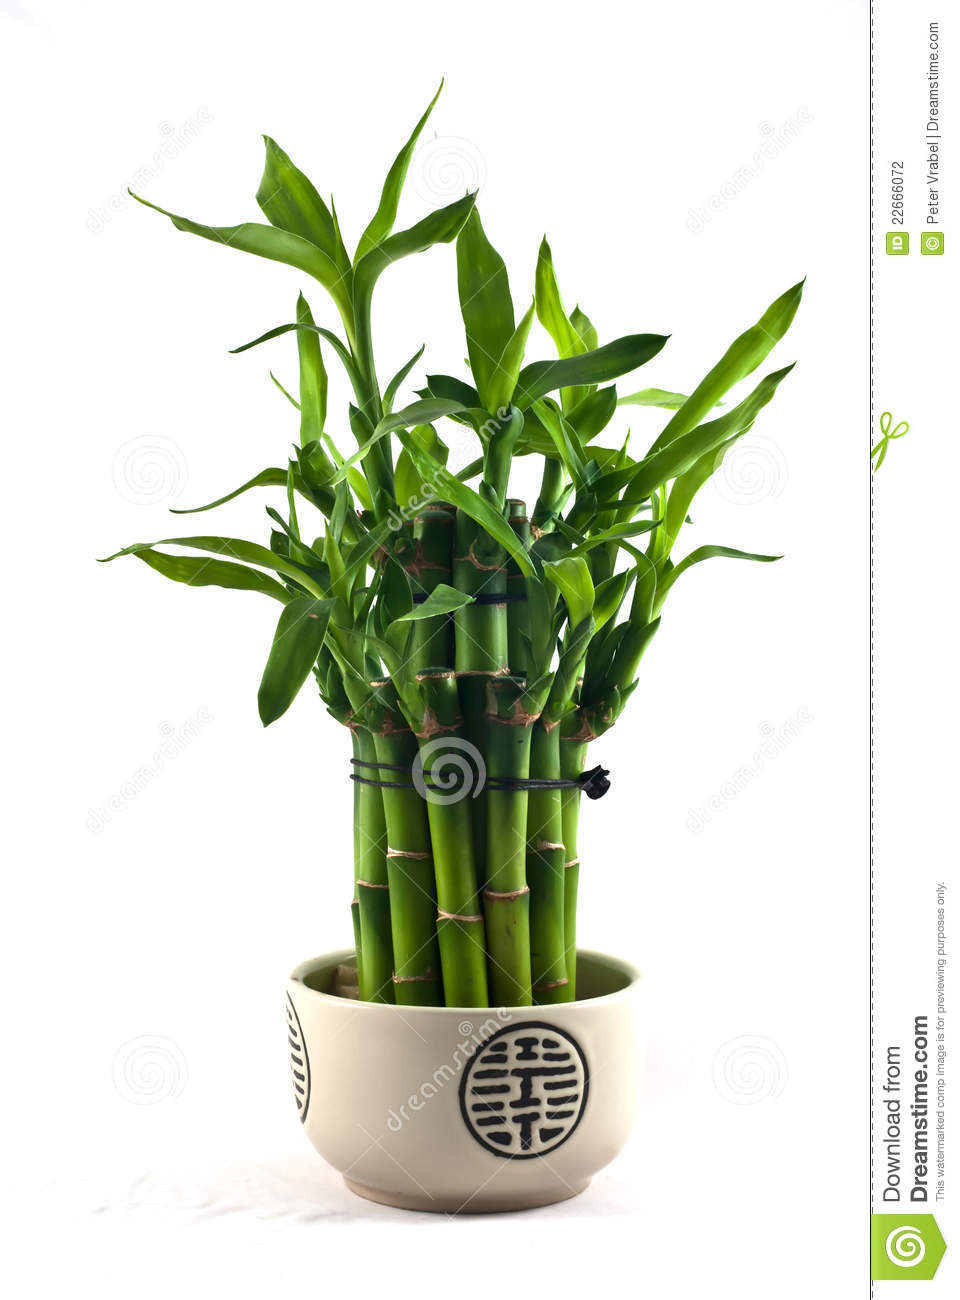 lucky bamboo stock photography image 22666072. Black Bedroom Furniture Sets. Home Design Ideas